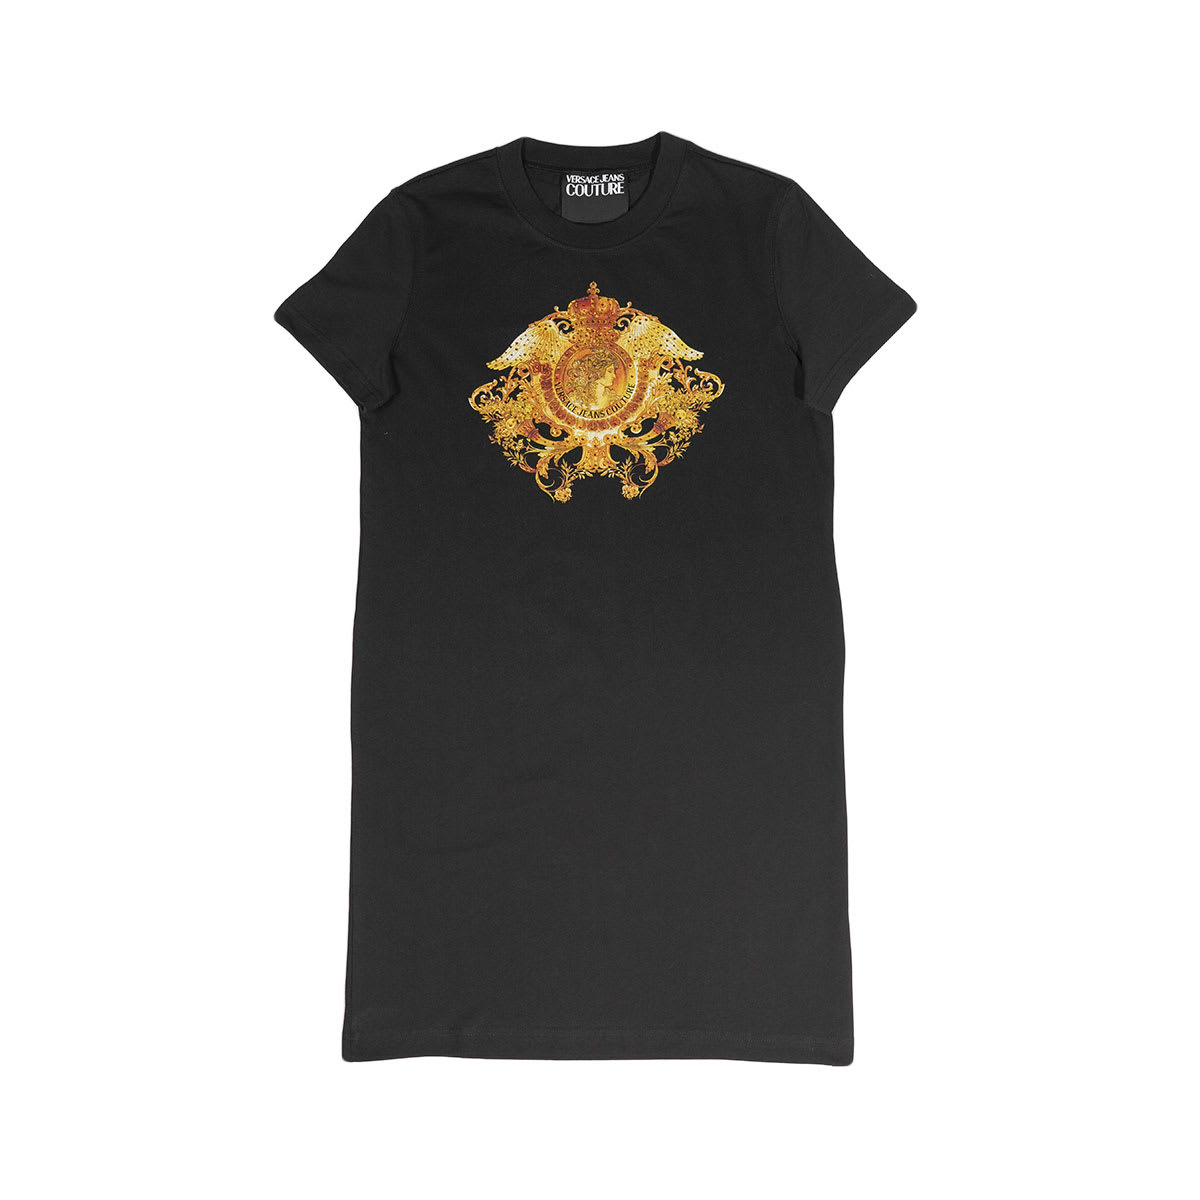 Buy Versace Jeans Couture Logo Print T-shirt Dress online, shop Versace Jeans Couture with free shipping